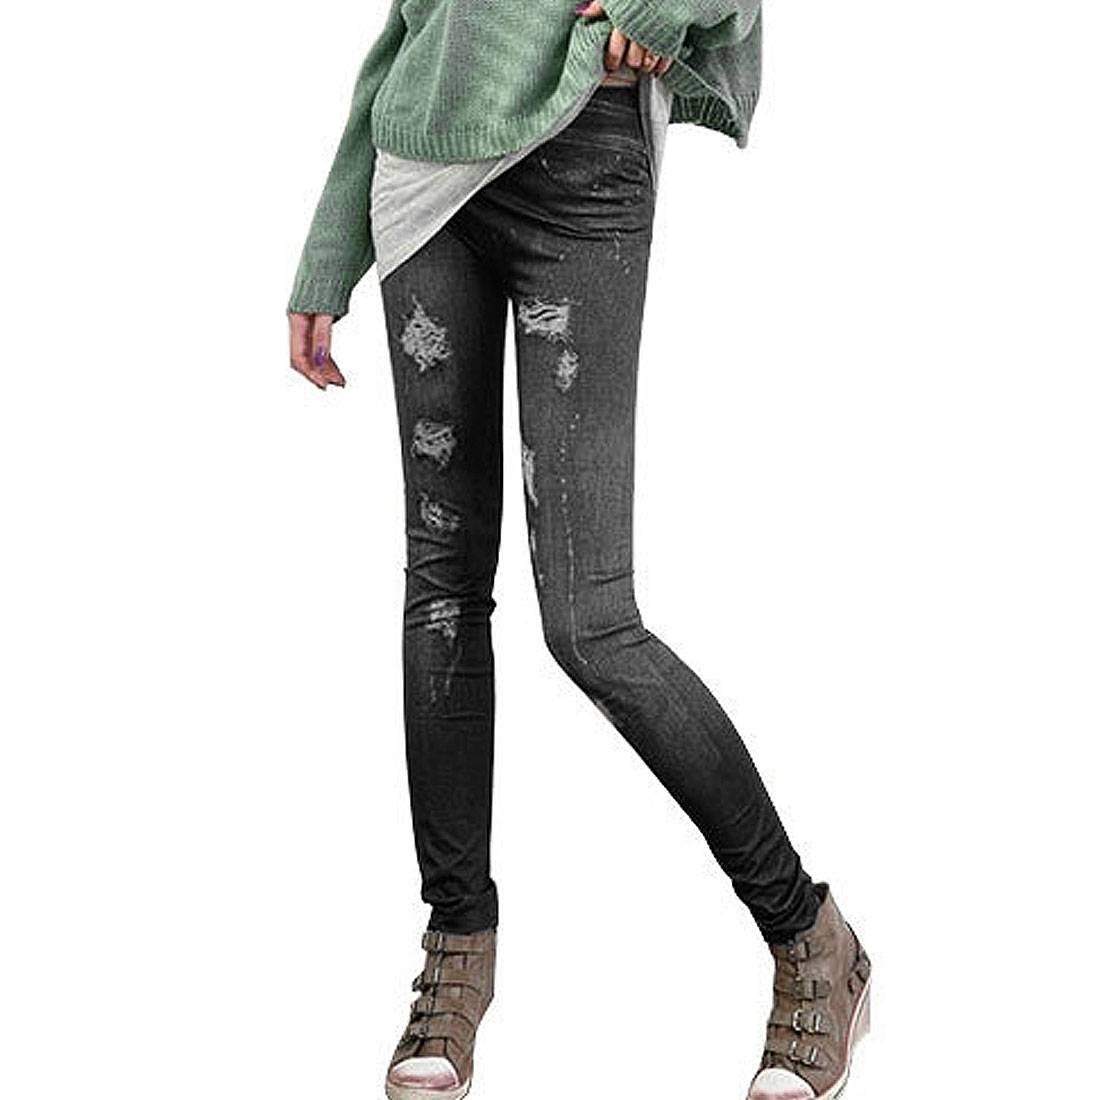 Autumn Distressed Pattern Mid Rise Slim Fit Leggings Black XS for Ladies